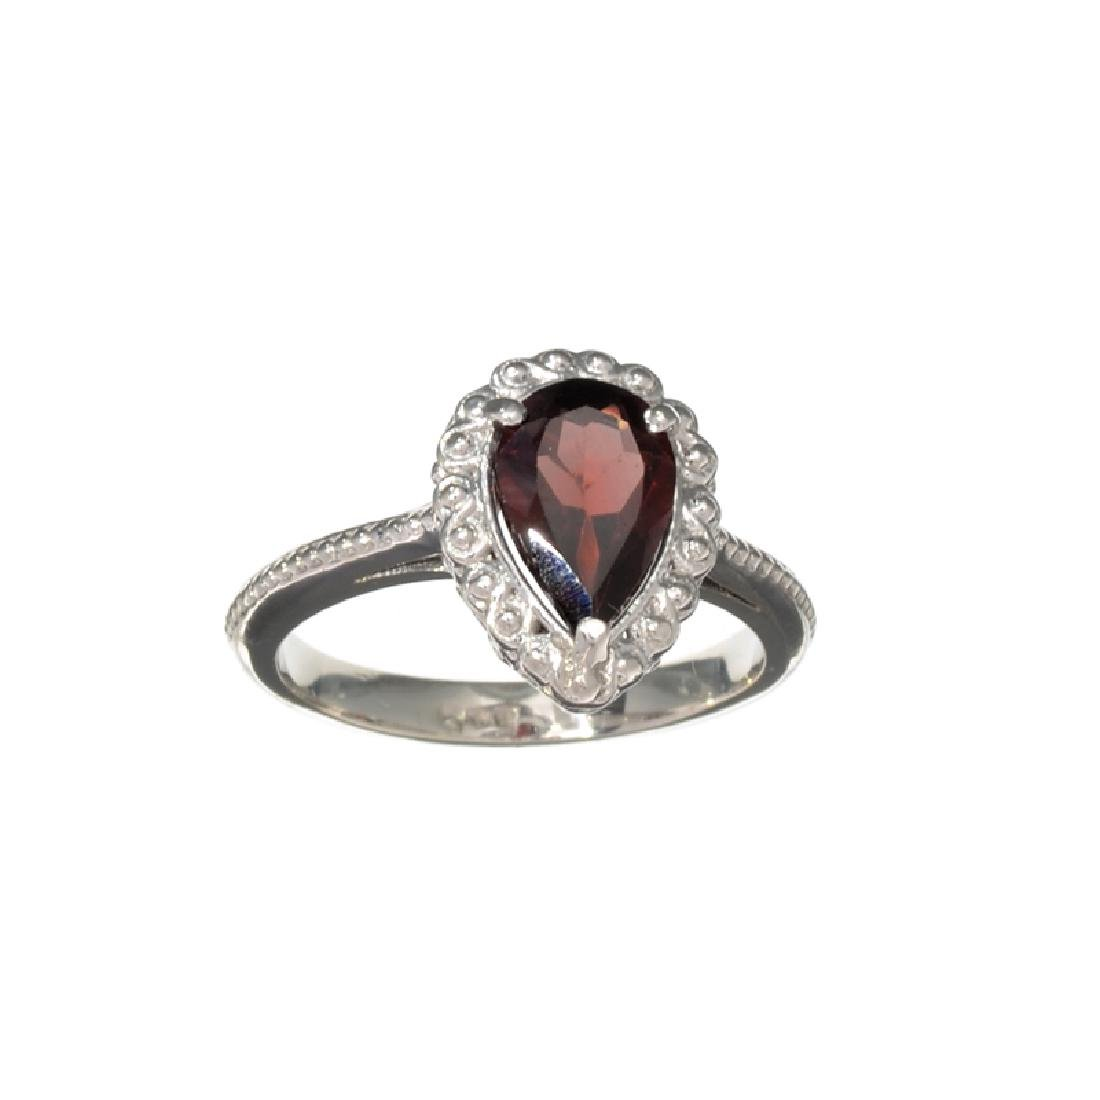 APP: 0.3k Fine Jewelry 2.27CT Pear Cut Almandite Garnet